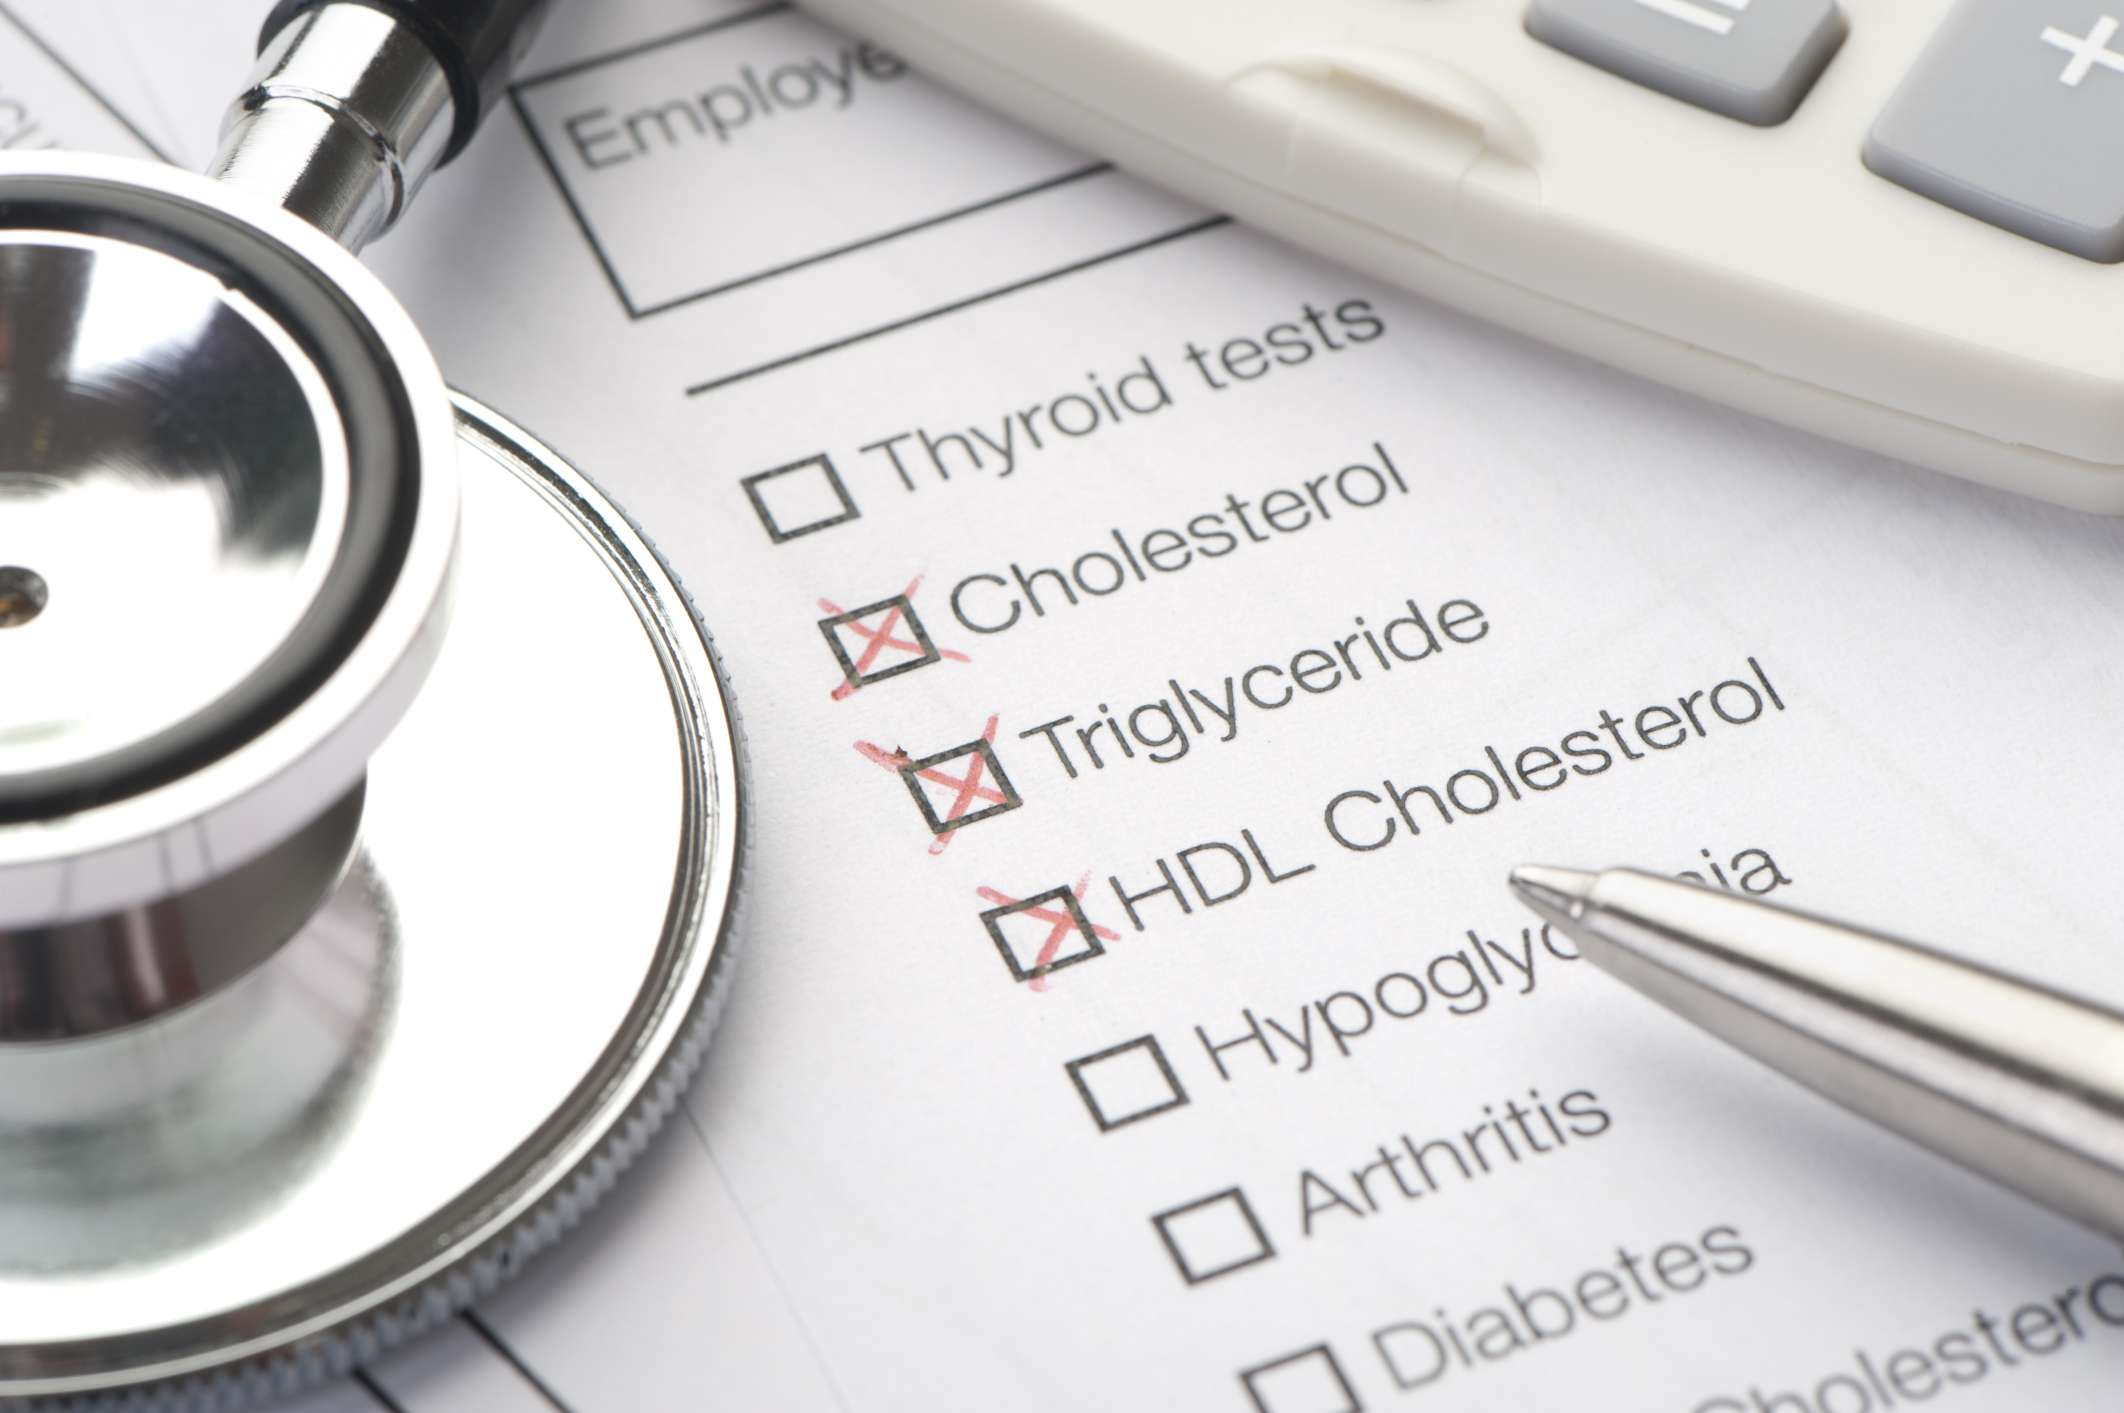 medical form with cholesterol and triglyceride lab tests checked